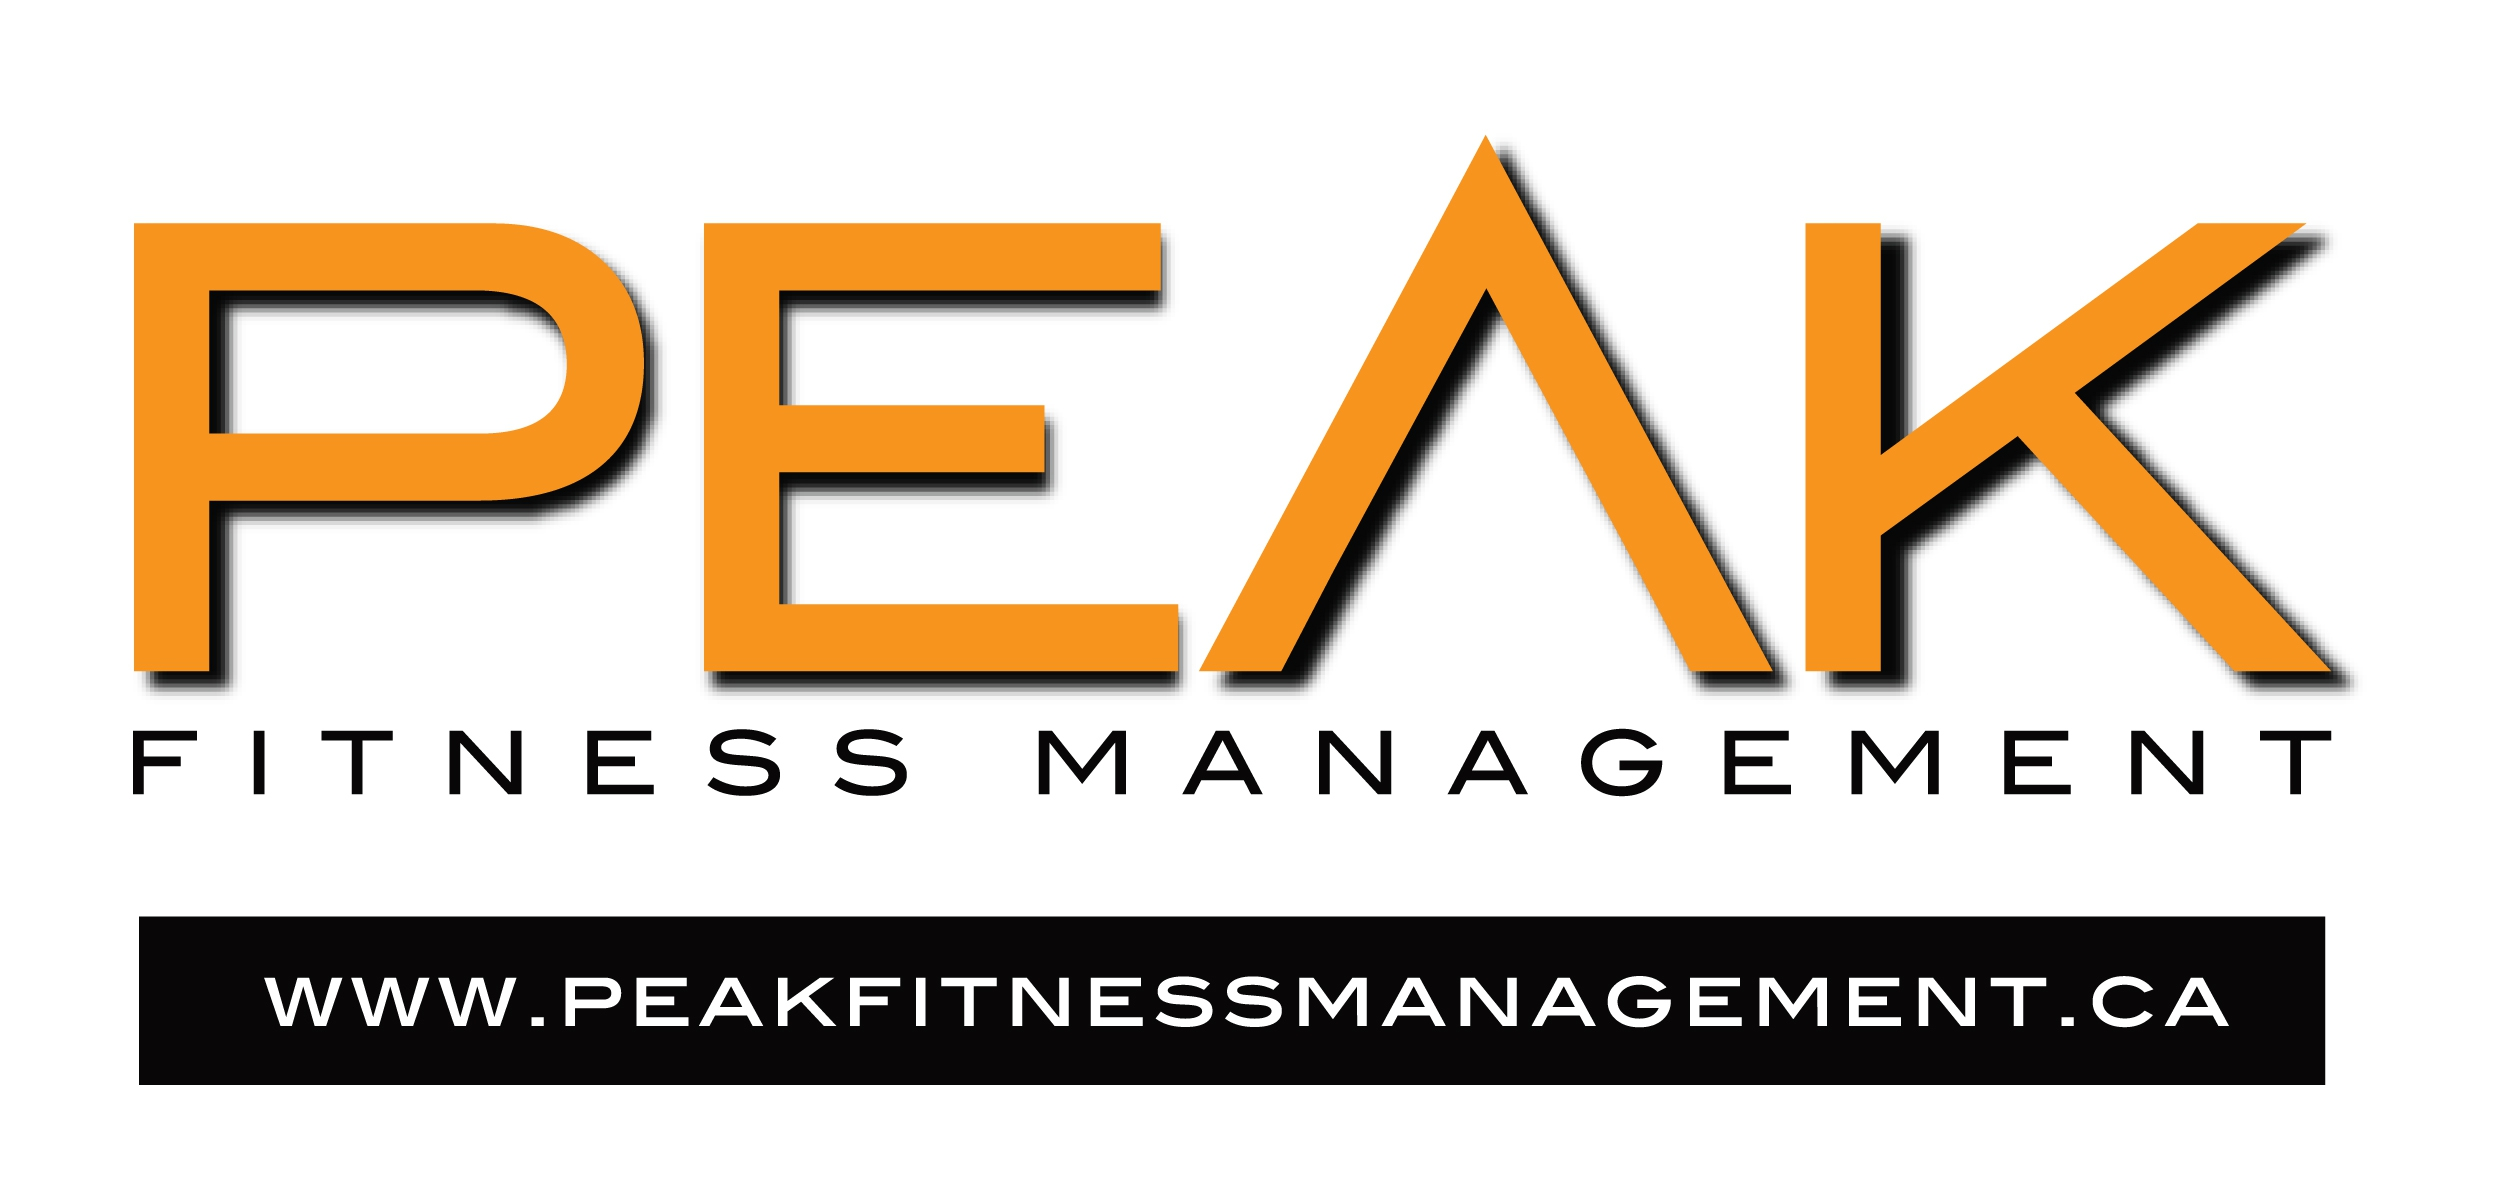 Peak Fitness Management Logo